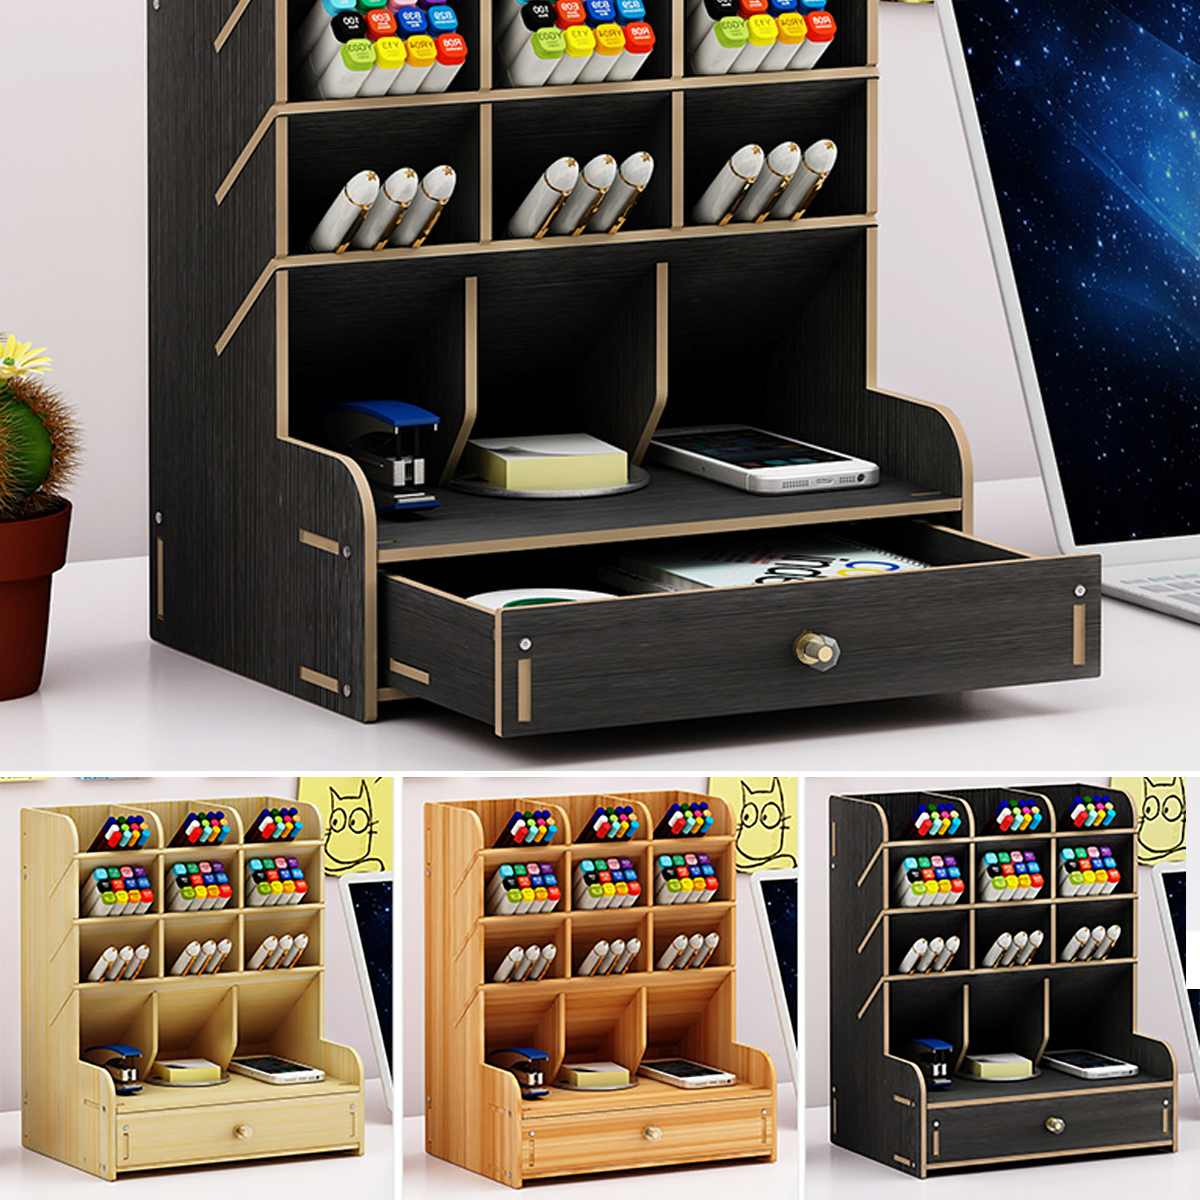 5 Layer Multi-function Pen Box Holder Wooden Pencil Organizer Display Case With Drawer Office School Accessories Desktop Storage